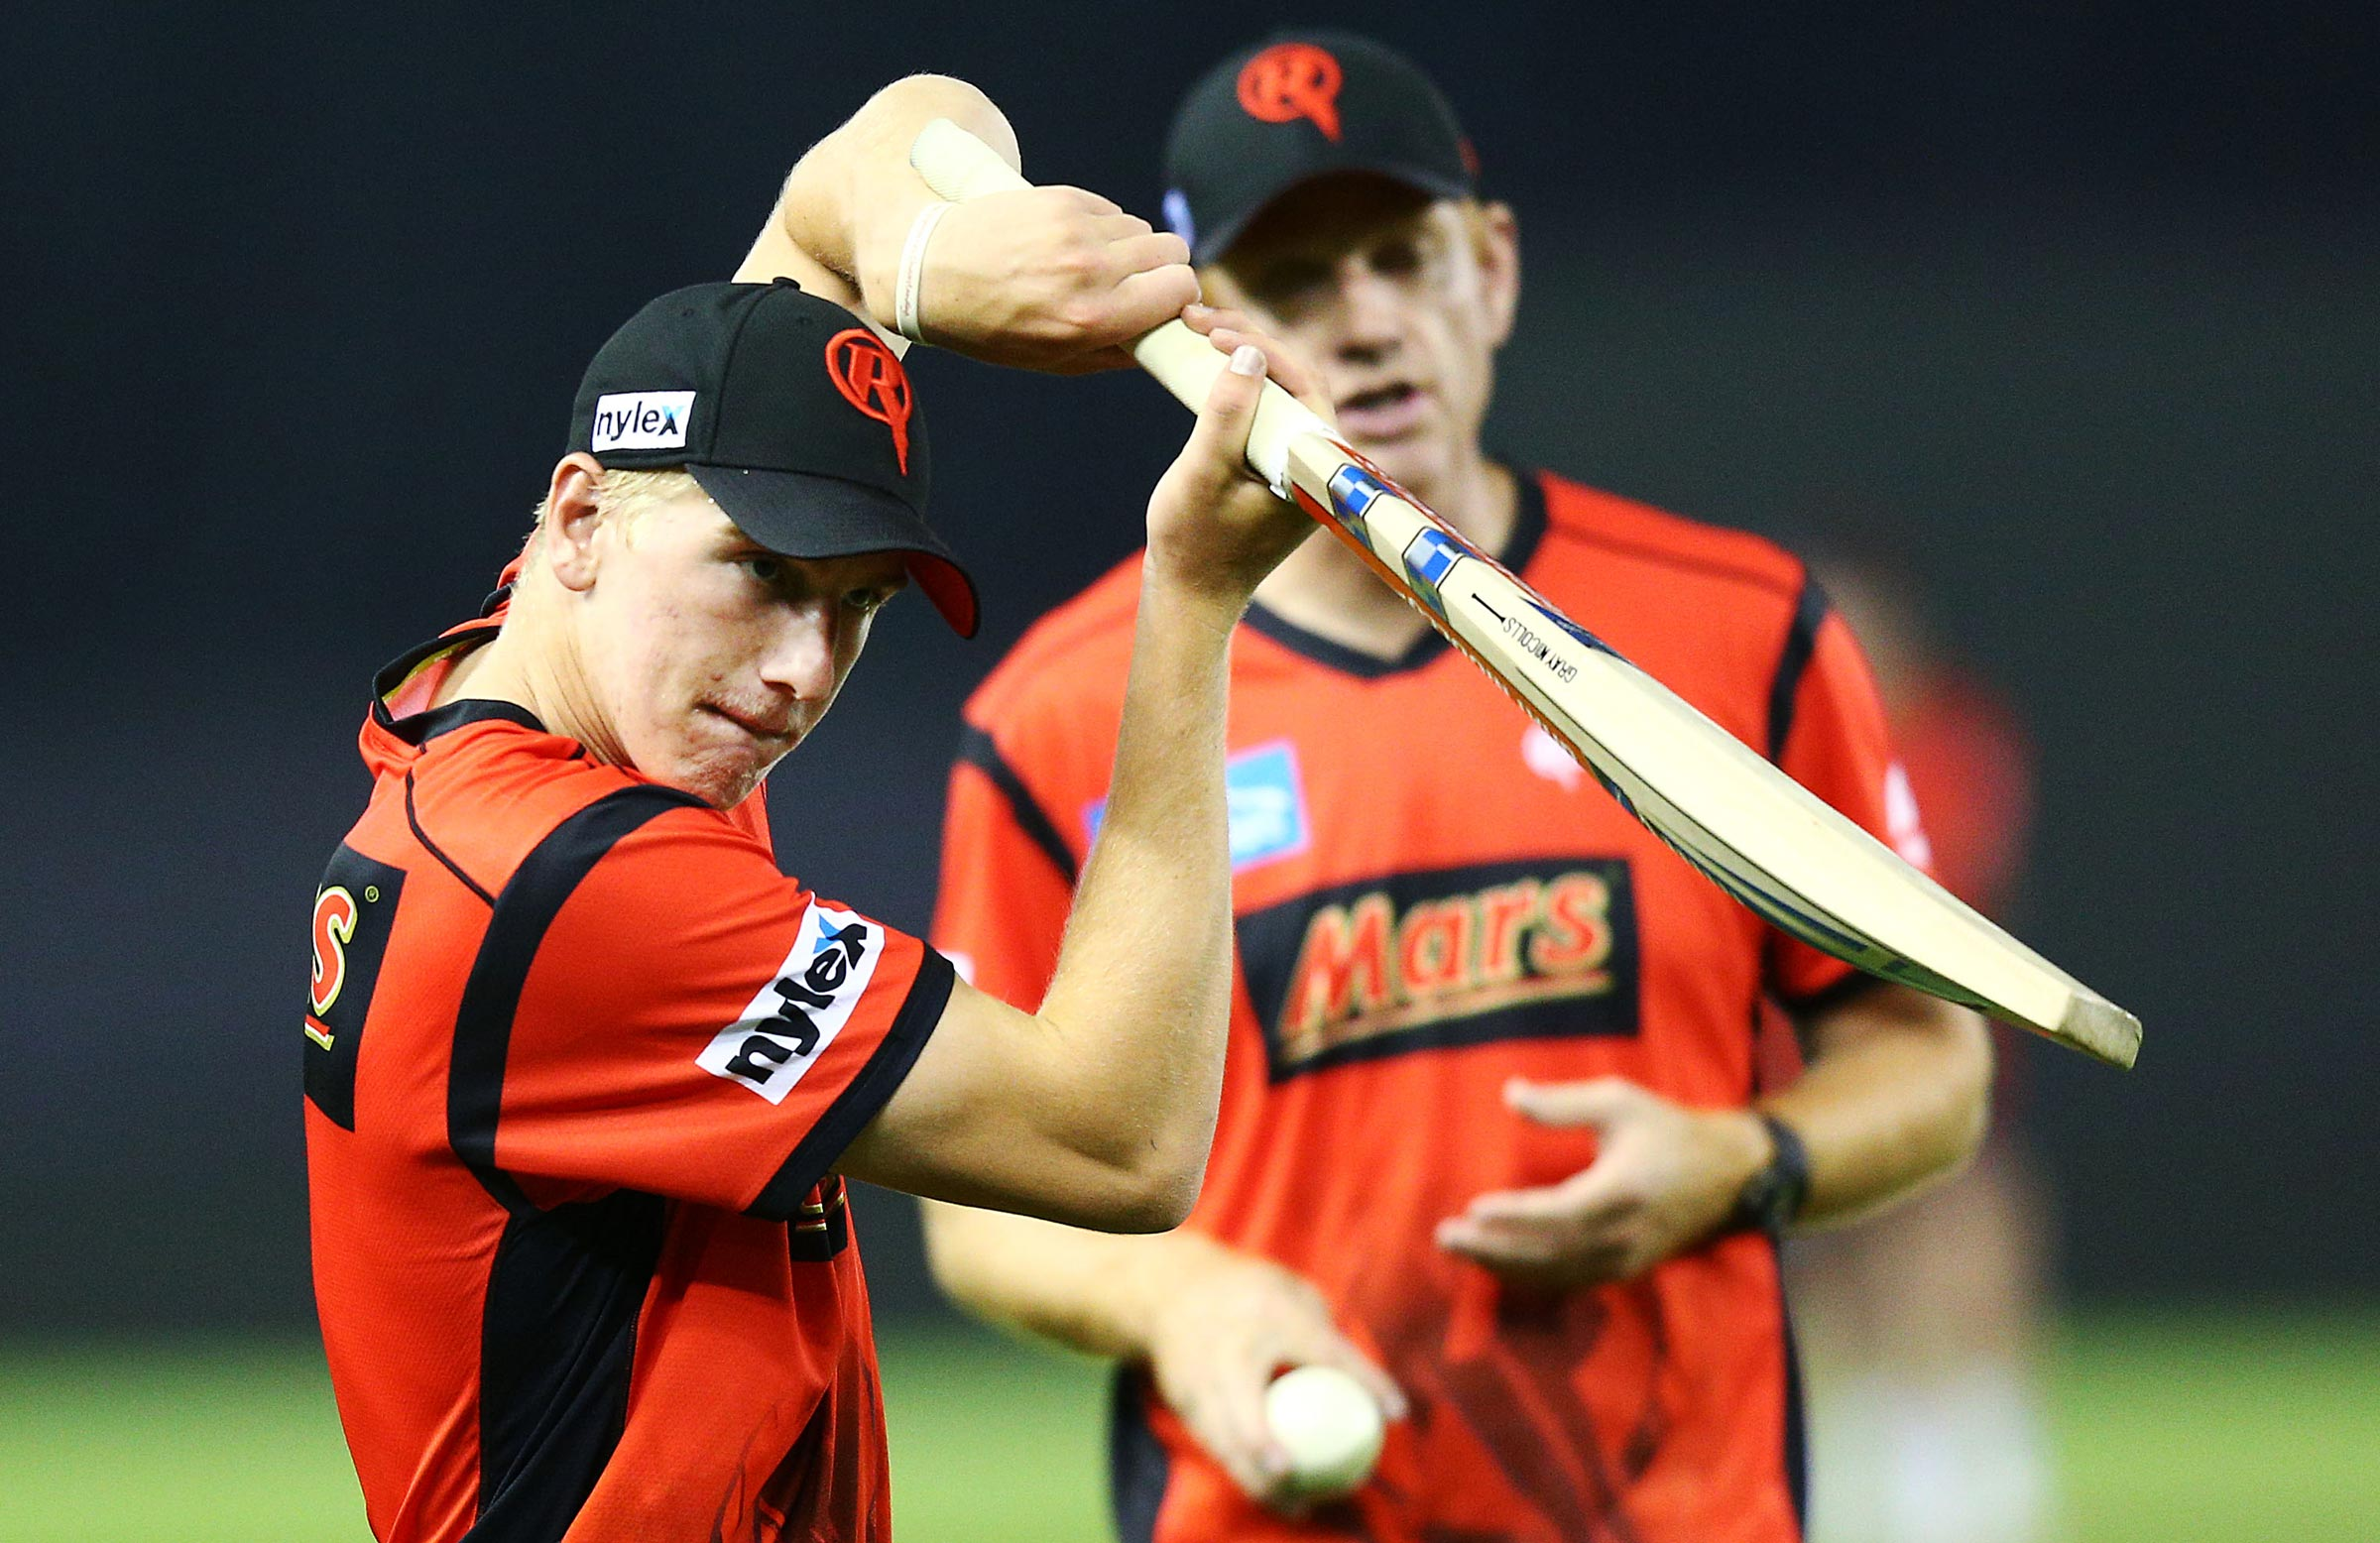 Family loyalties are split with Will Sutherland playing for the 'Gades // Getty